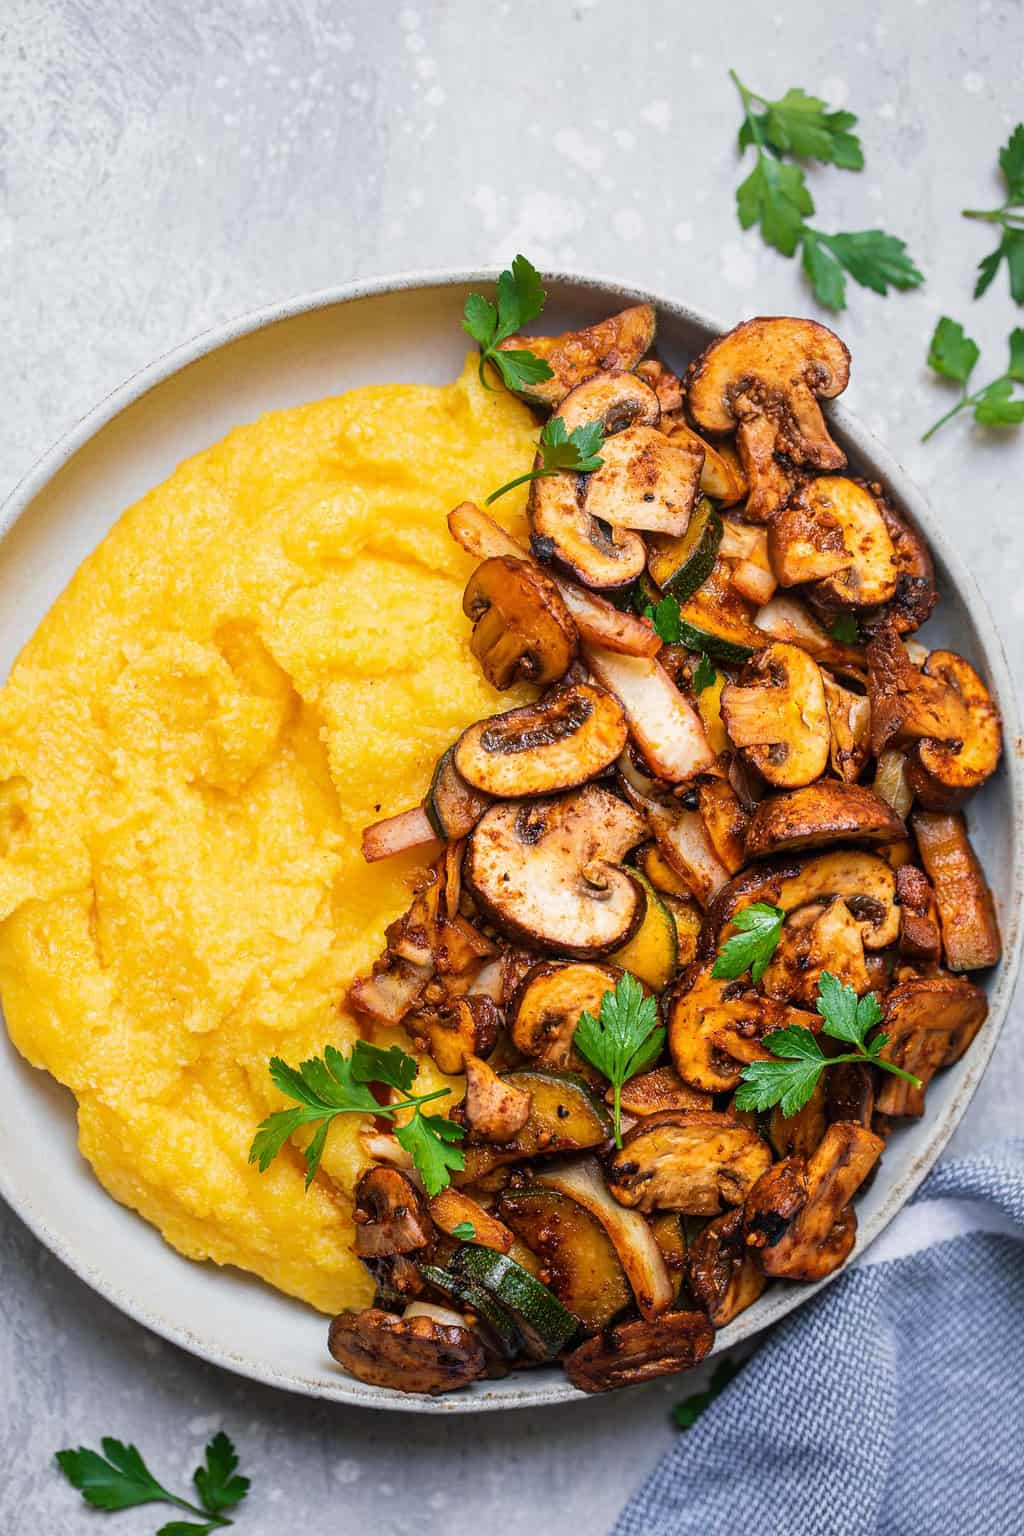 Polenta bowl with mushrooms and vegetables